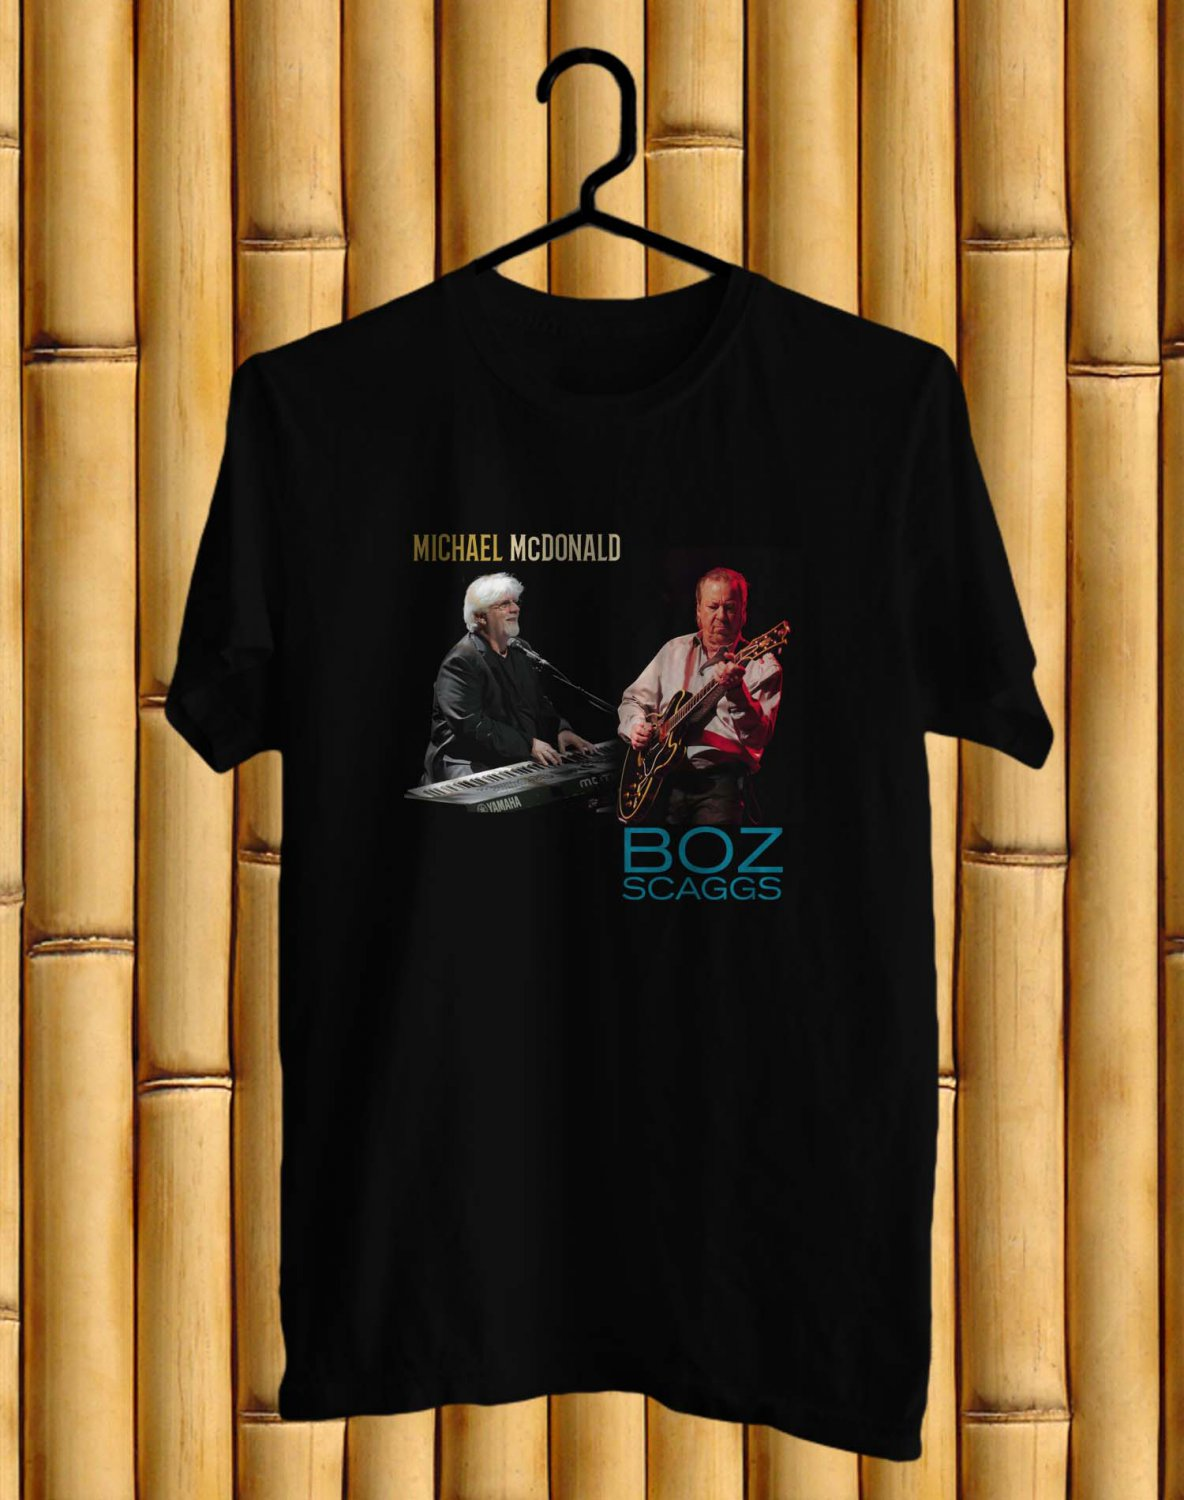 Michael McDonald & Bozz Scaggs tour 2017 Logo Black Tee's  Front Side by Complexart